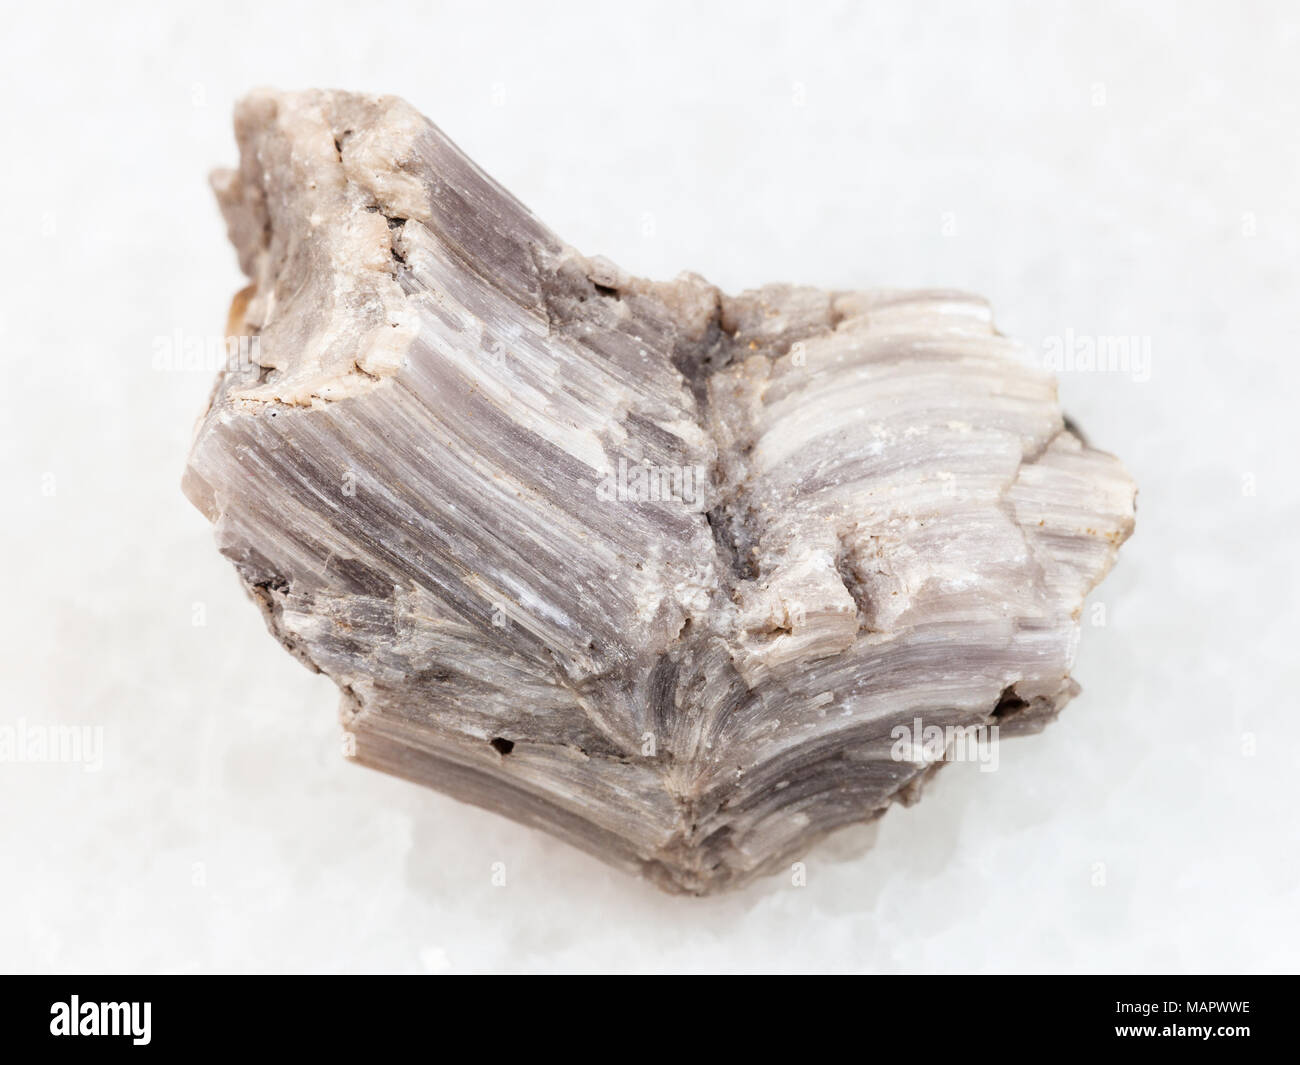 macro shooting of natural mineral rock specimen - rough baryte stone on white marble background from Irkutsk region, Russia - Stock Image